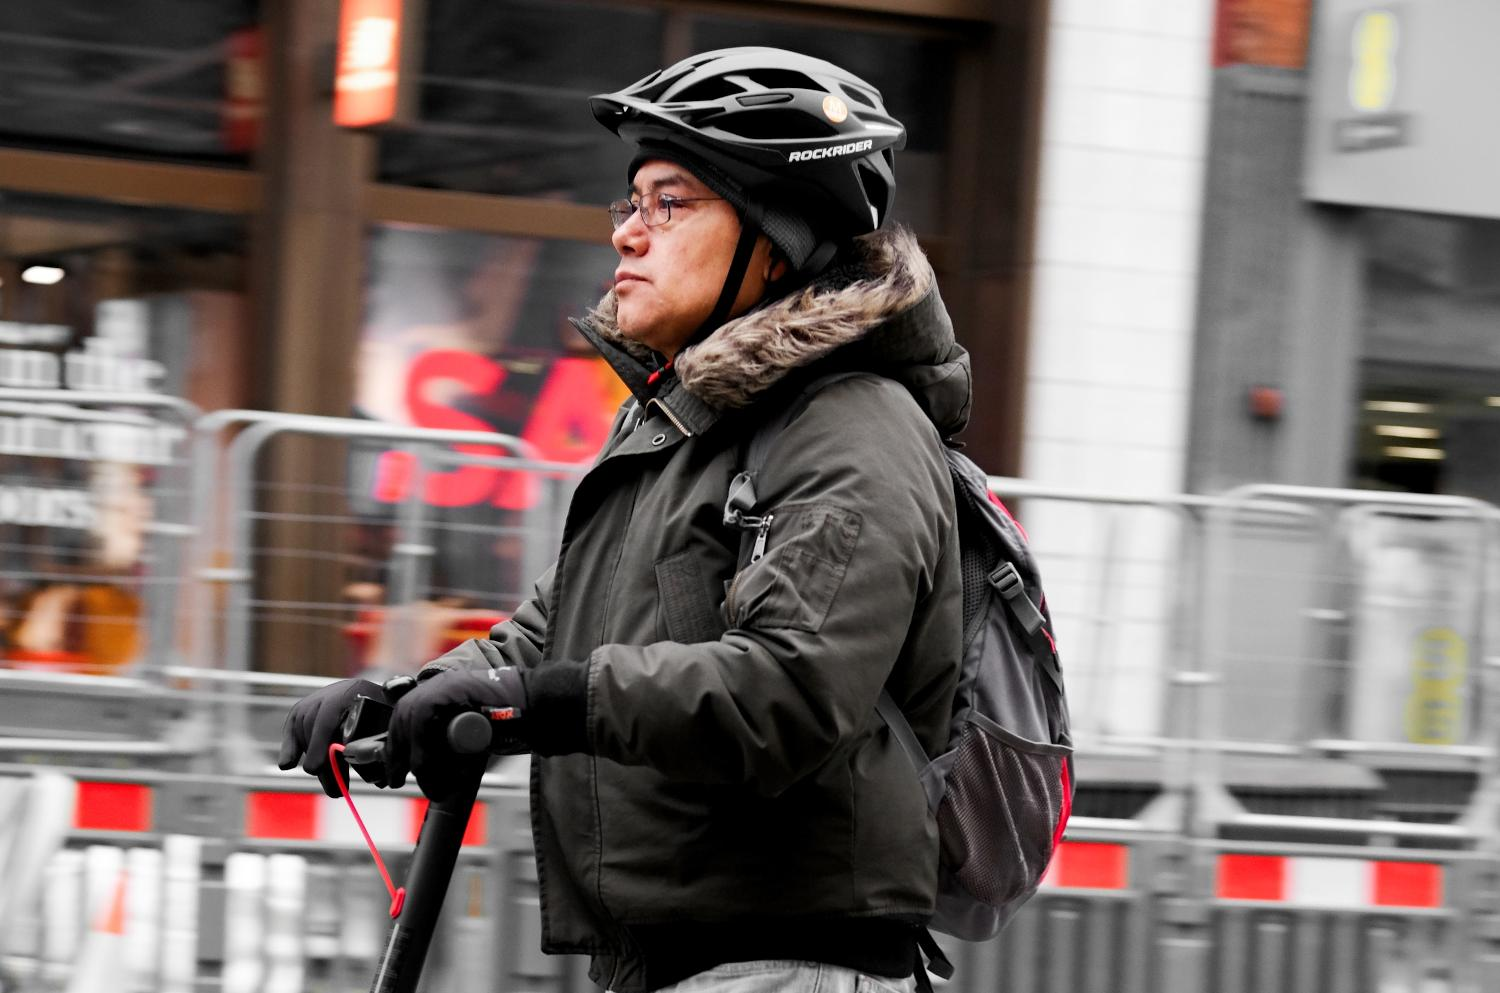 A man wearing a bike helmet rides his electric scooter through London's streets.